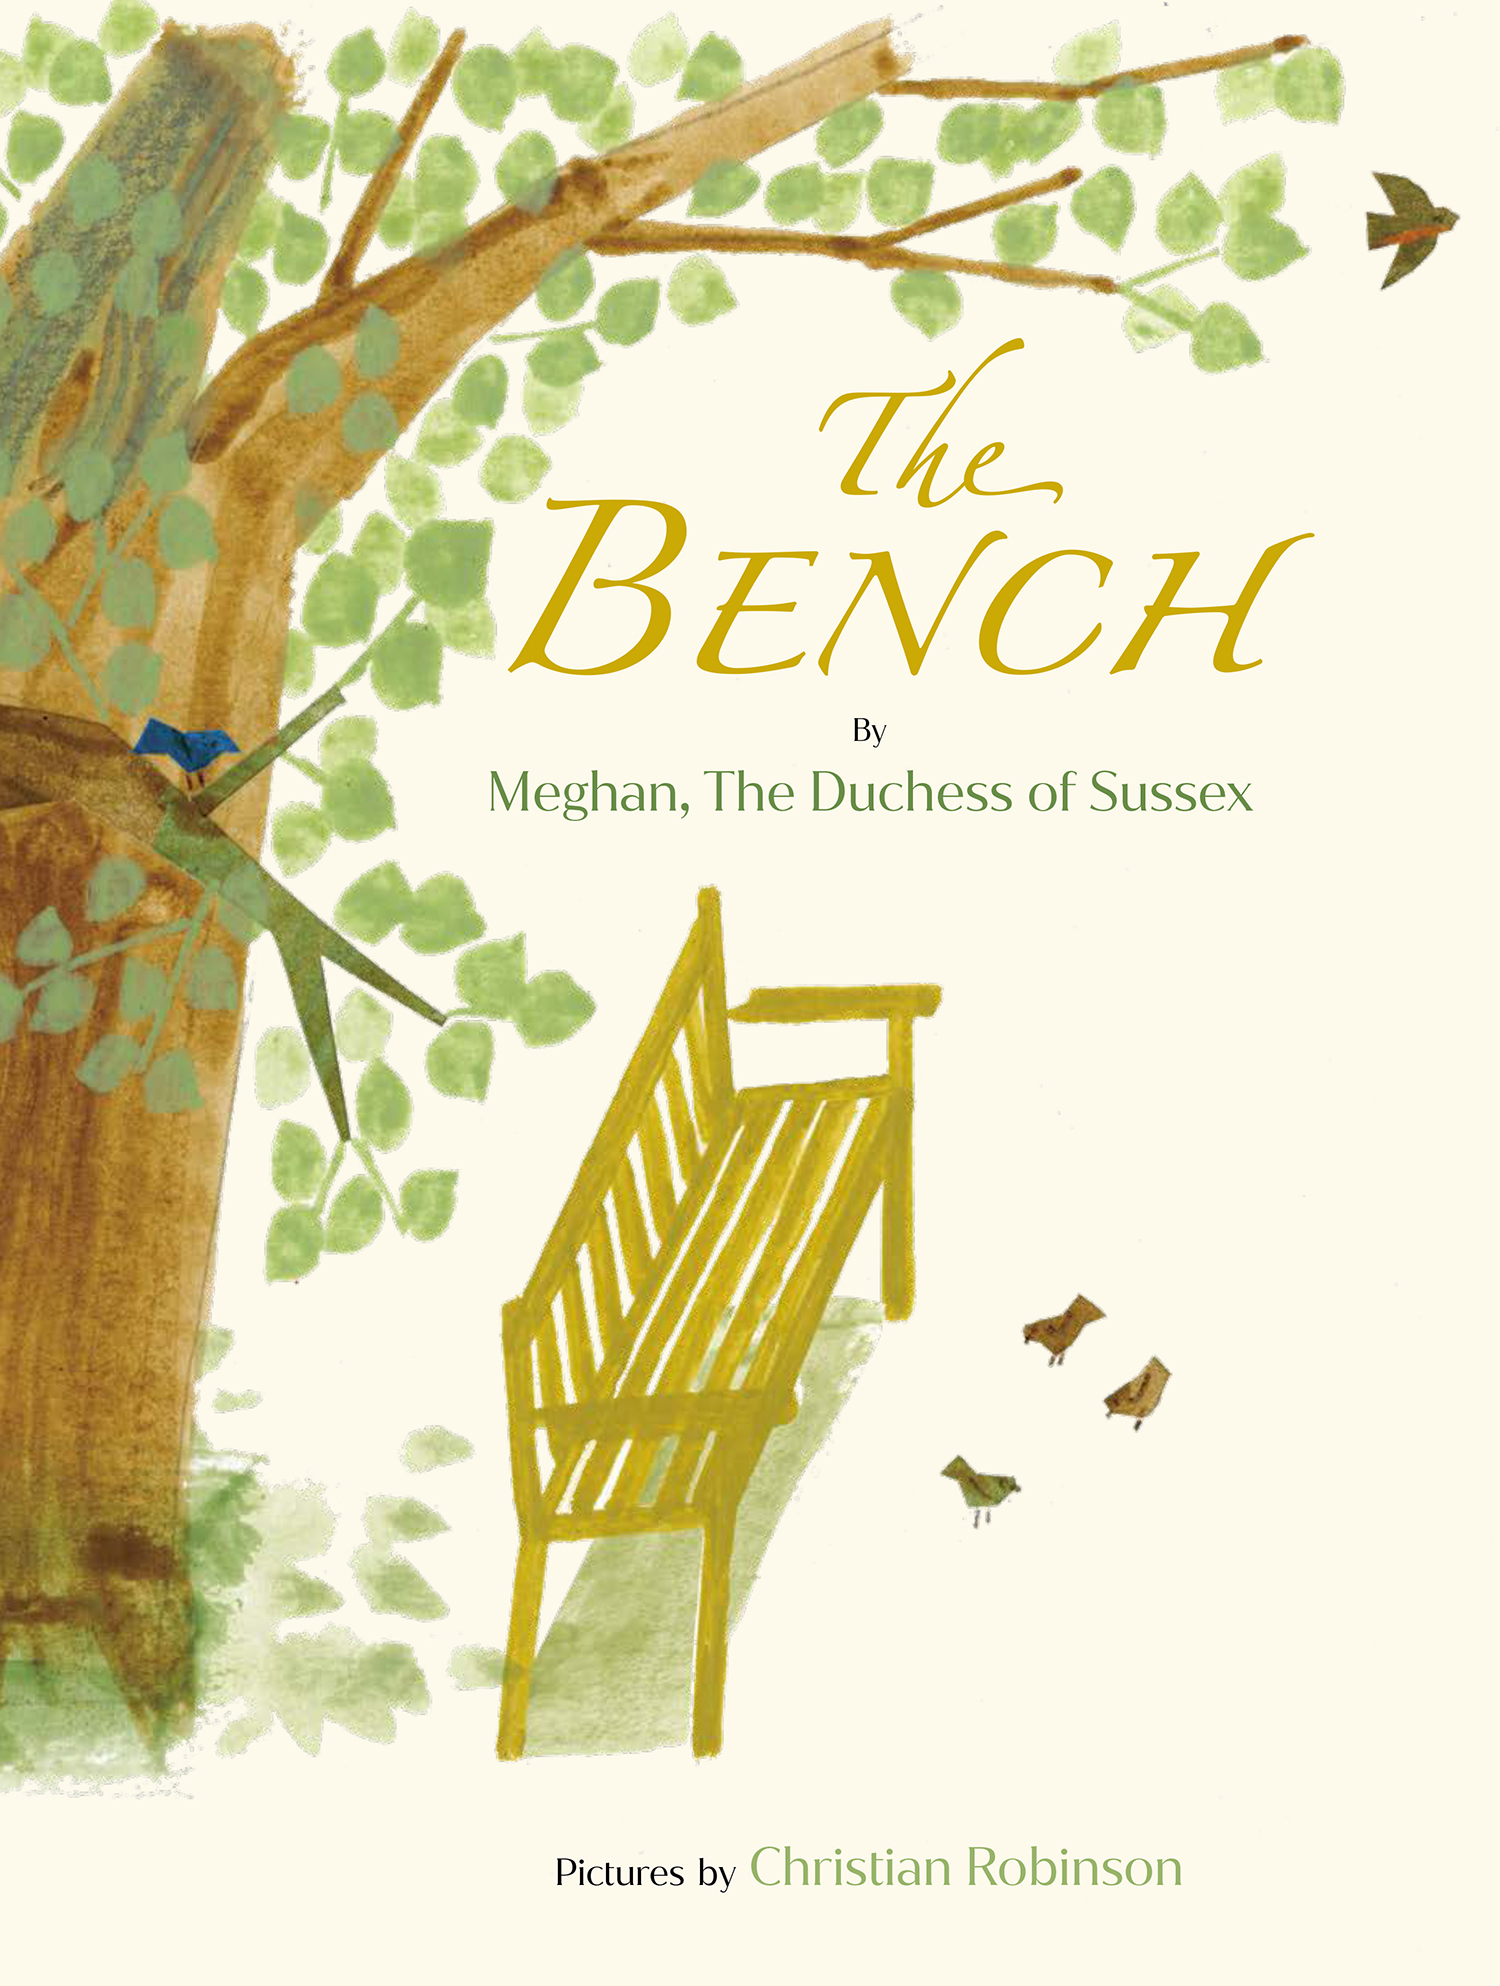 Meghan, The Duchess of Sussex, has authored and will publish on June 8, 2021, her first children's book, THE BENCH